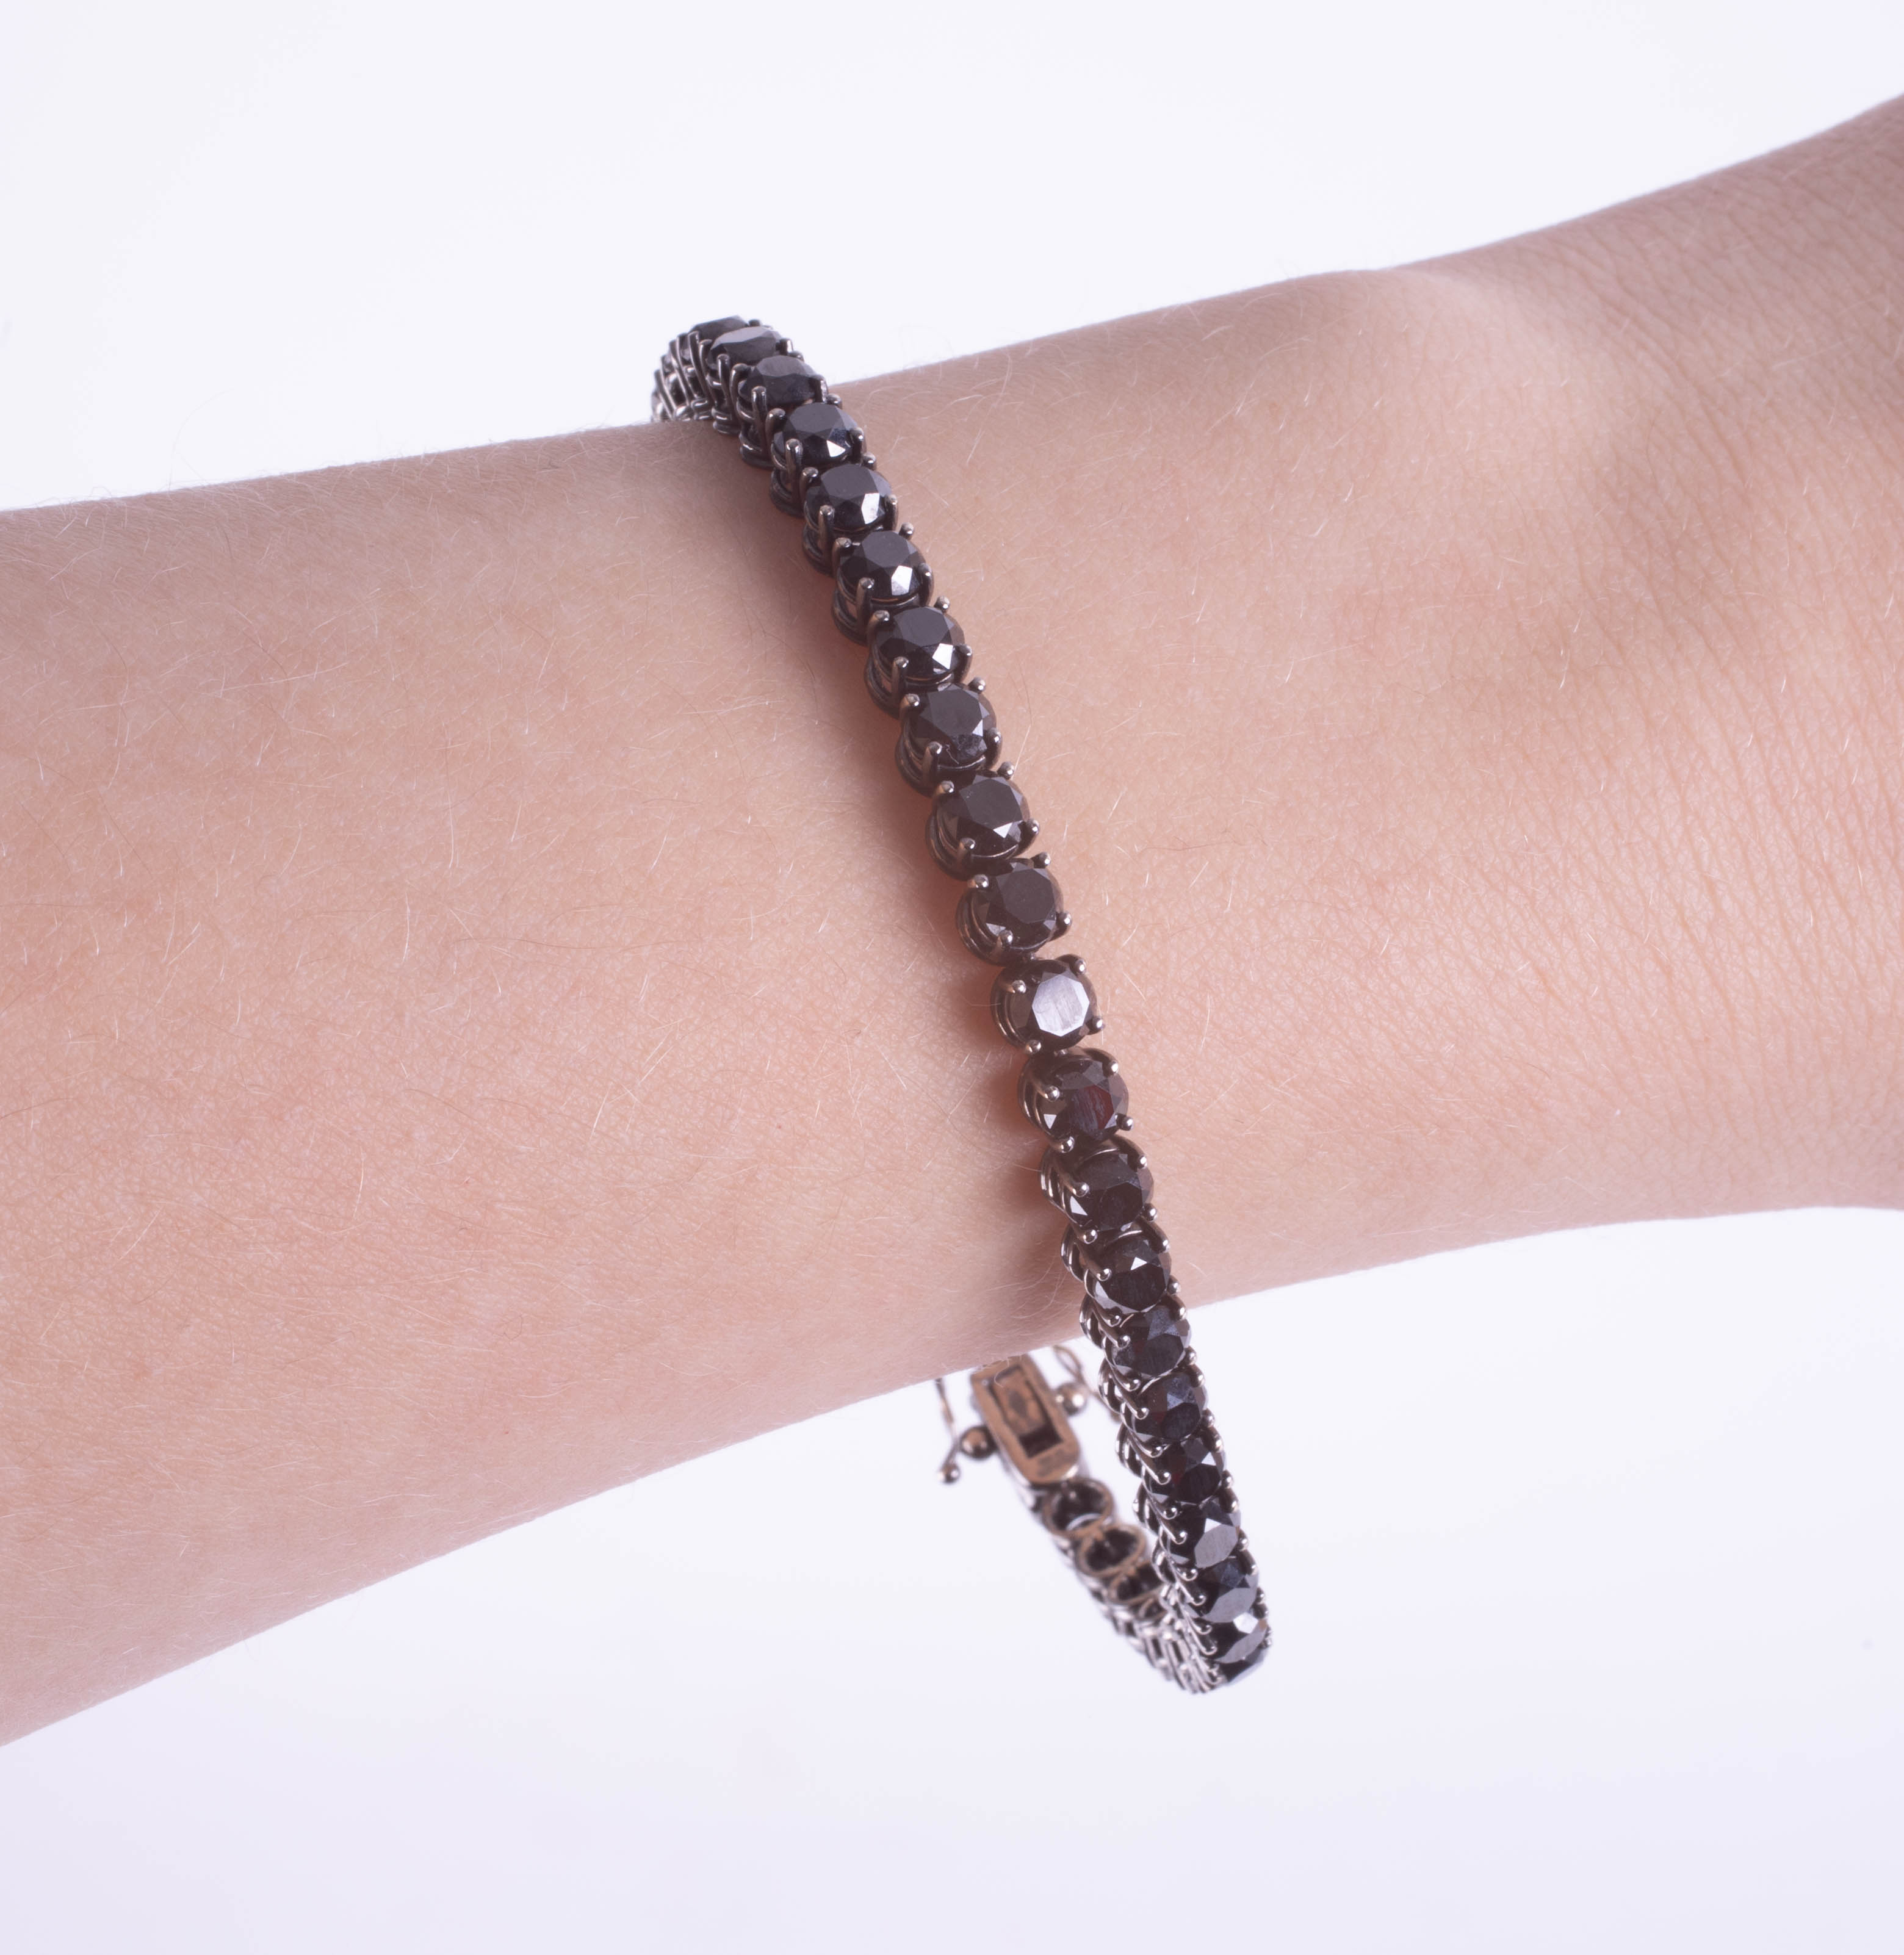 An 18ct white gold black diamond line bracelet, boxed, diamond weight approx 14.38ct. - Image 3 of 3